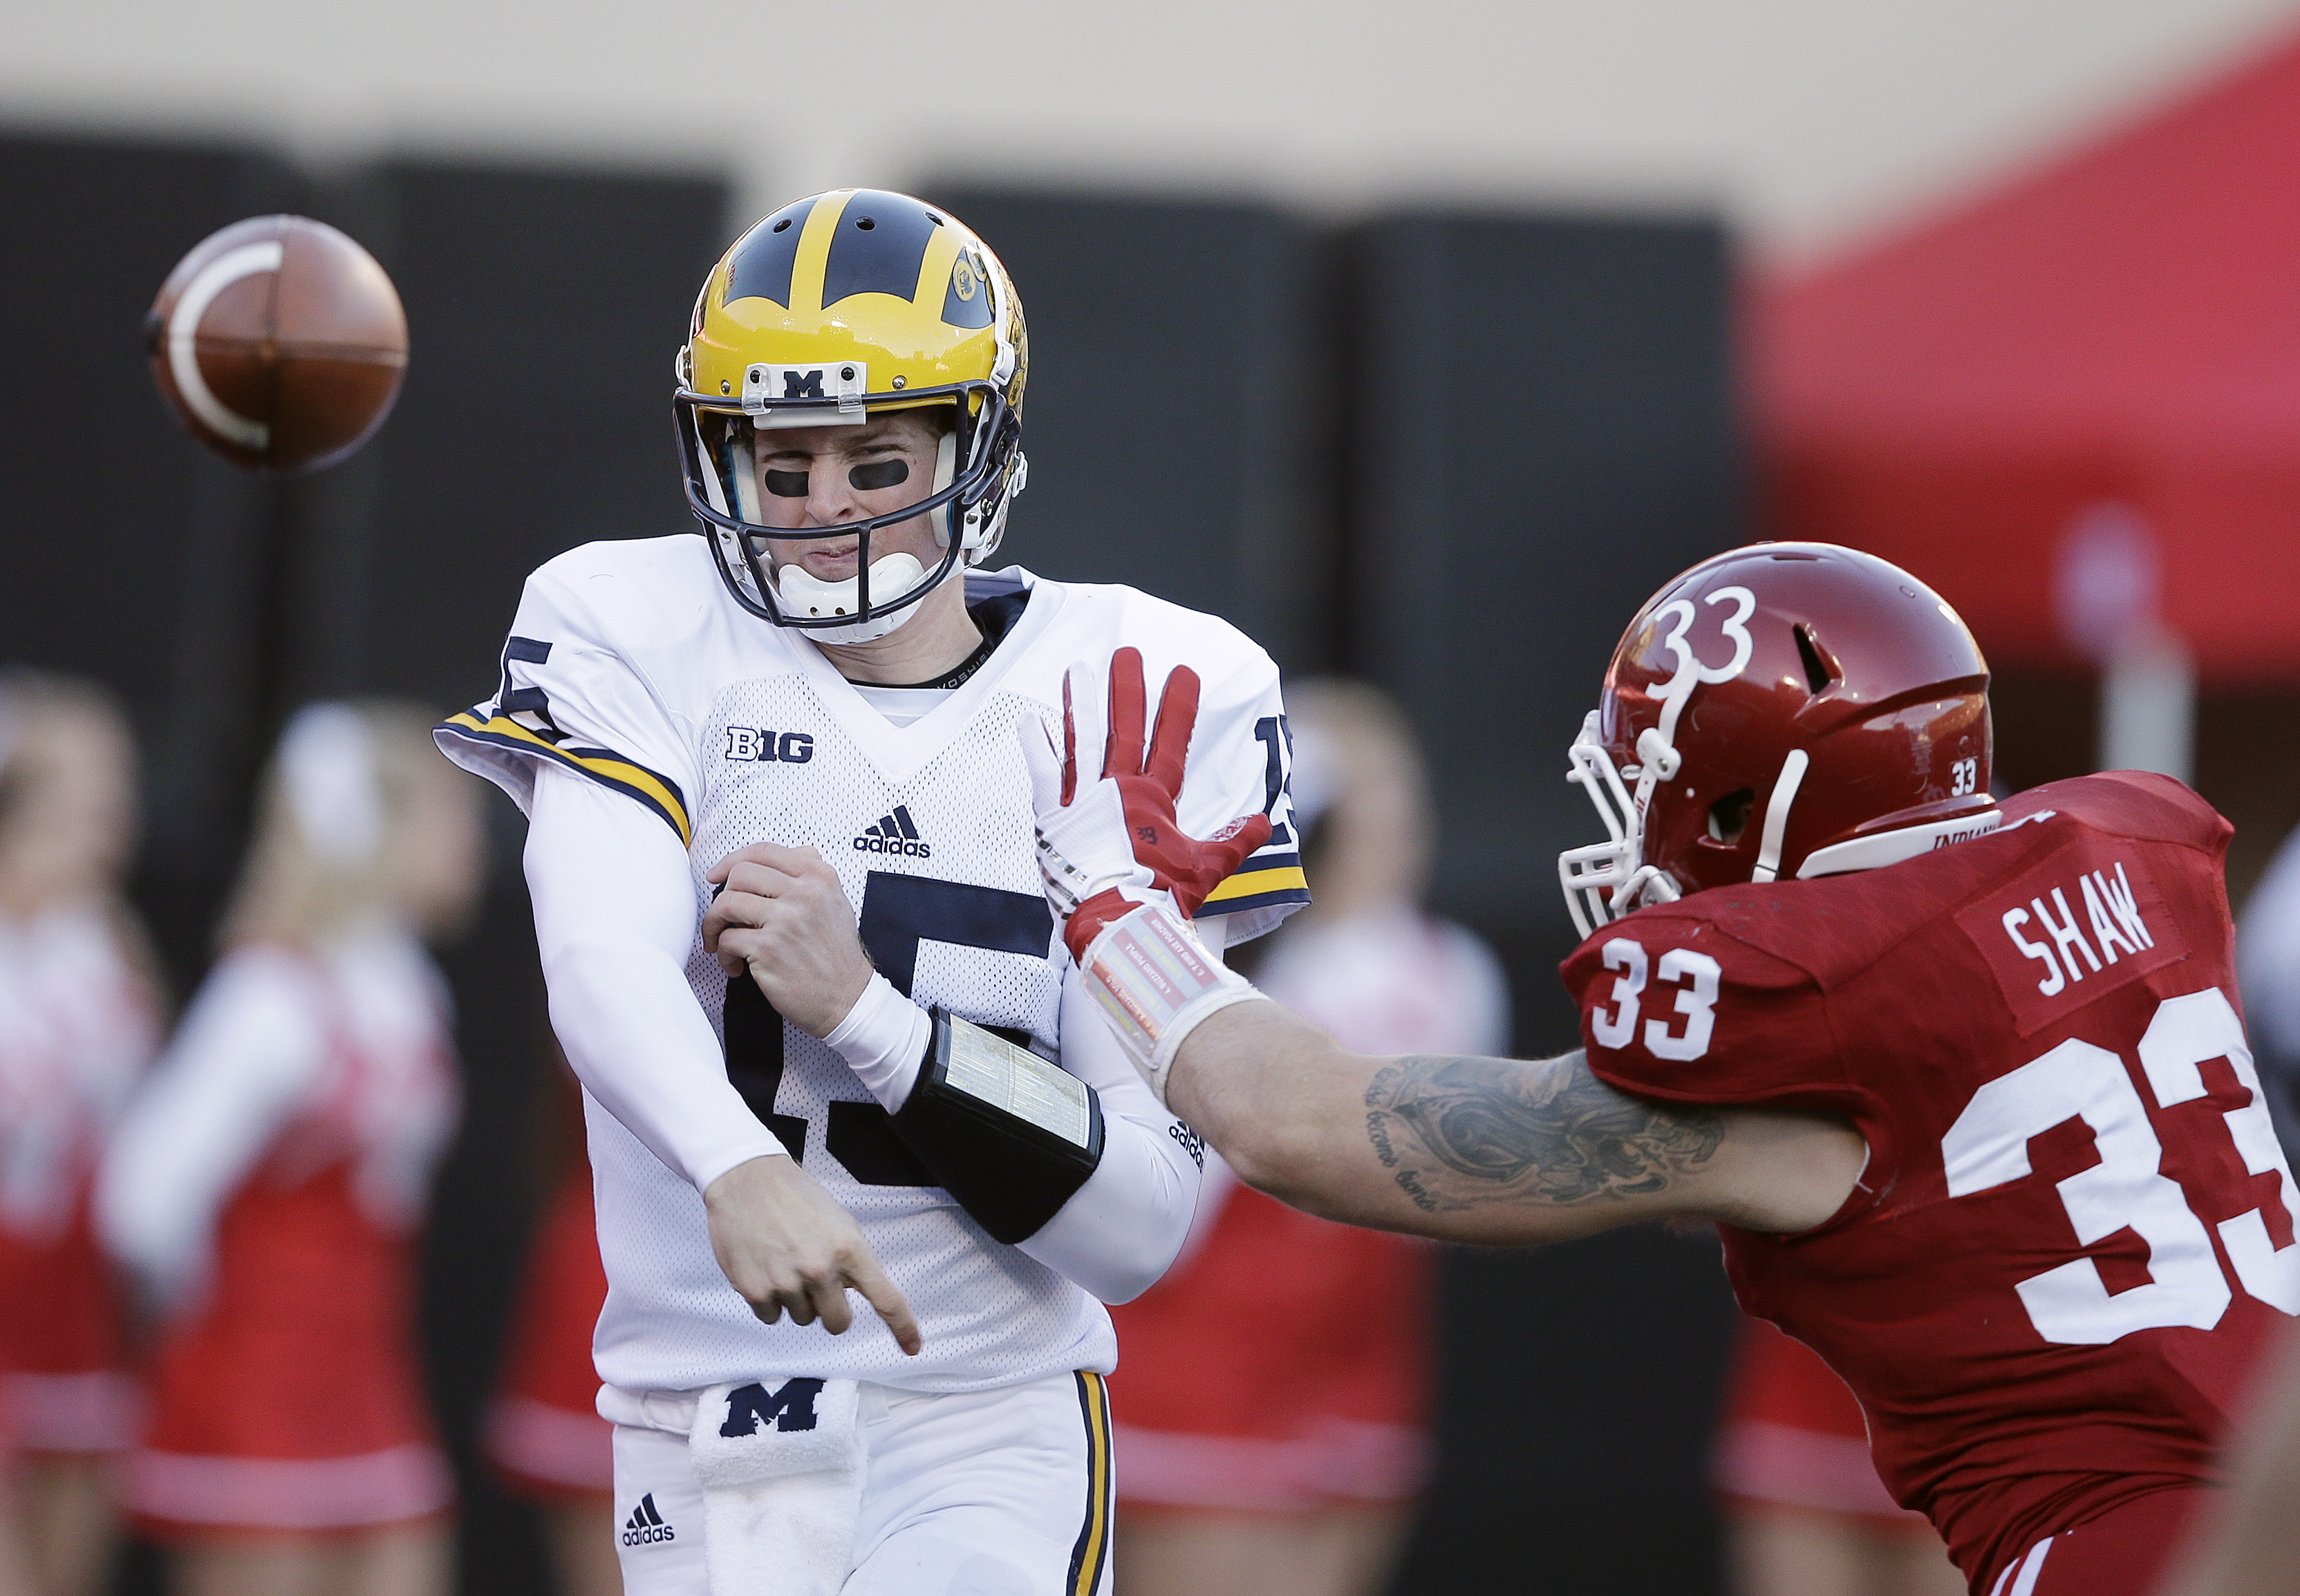 Michigan's Jake Rudock (15) throws while being pressured by Indiana's Zack Shaw (33) during the first half of an NCAA college football game Saturday, Nov. 14, 2015, in Bloomington, Ind. (AP Photo/Darron Cummings)